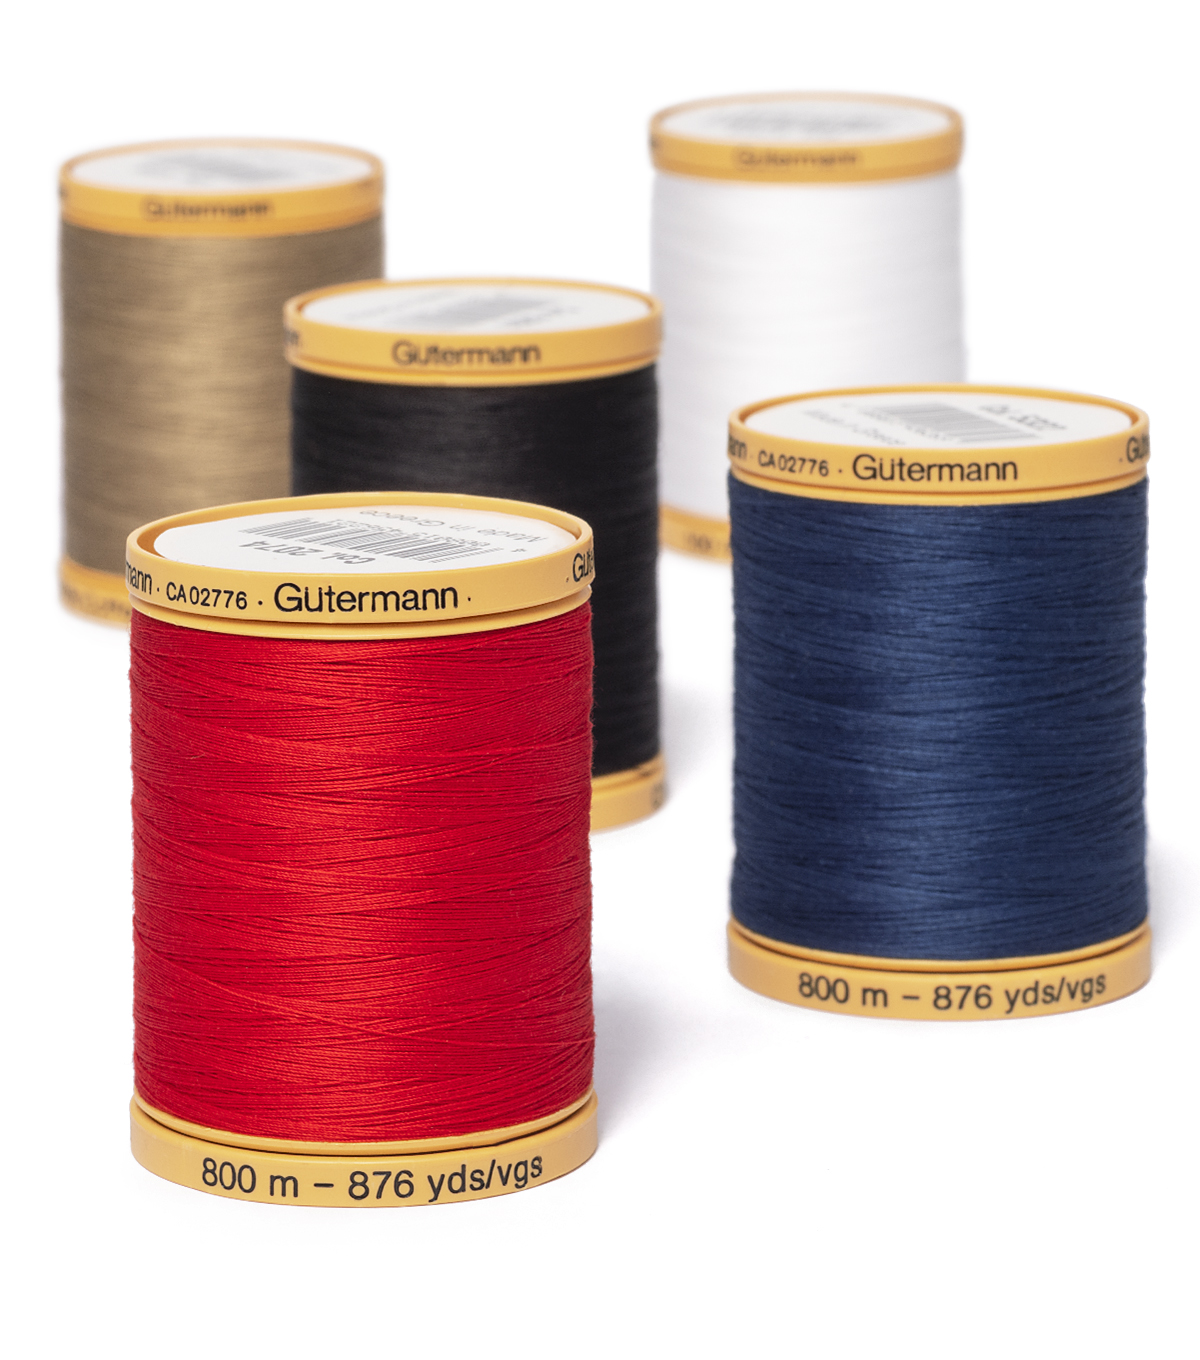 Gutermann Natural Cotton Thread Solids 876 yd